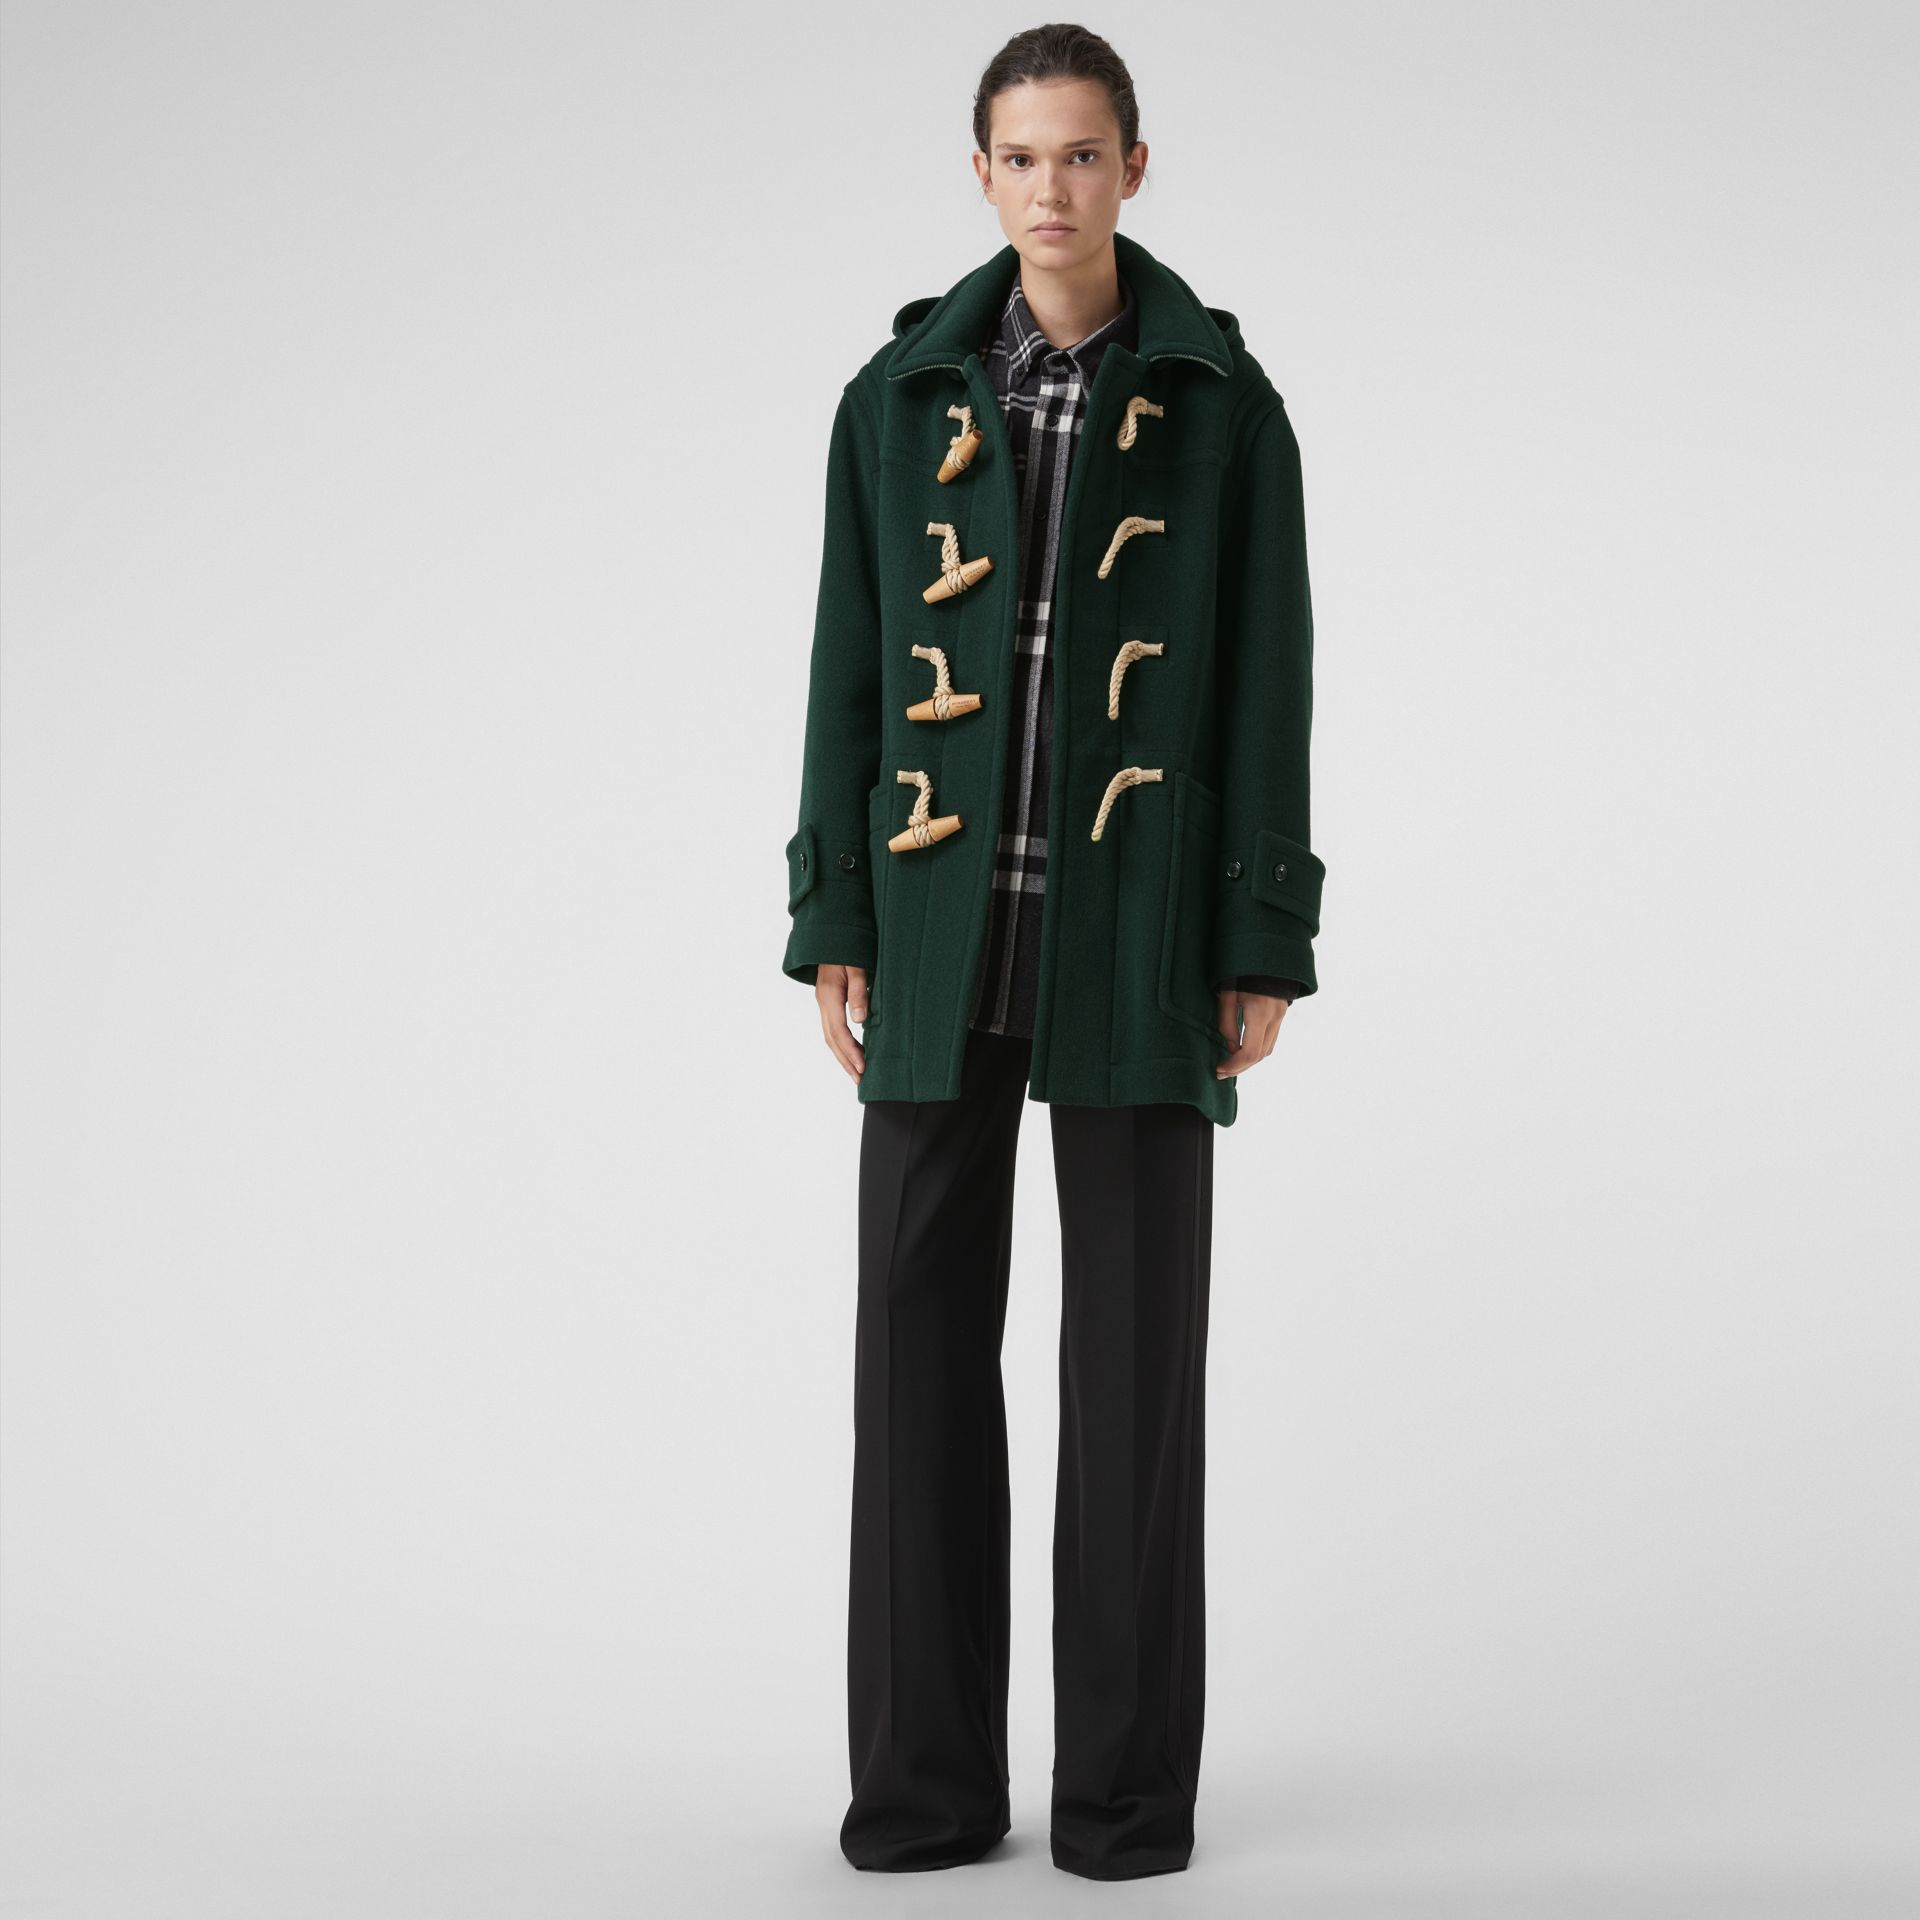 Gosha x Burberry Oversized Duffle Coat in Dark Forest Green | Burberry United Kingdom - gallery image 2